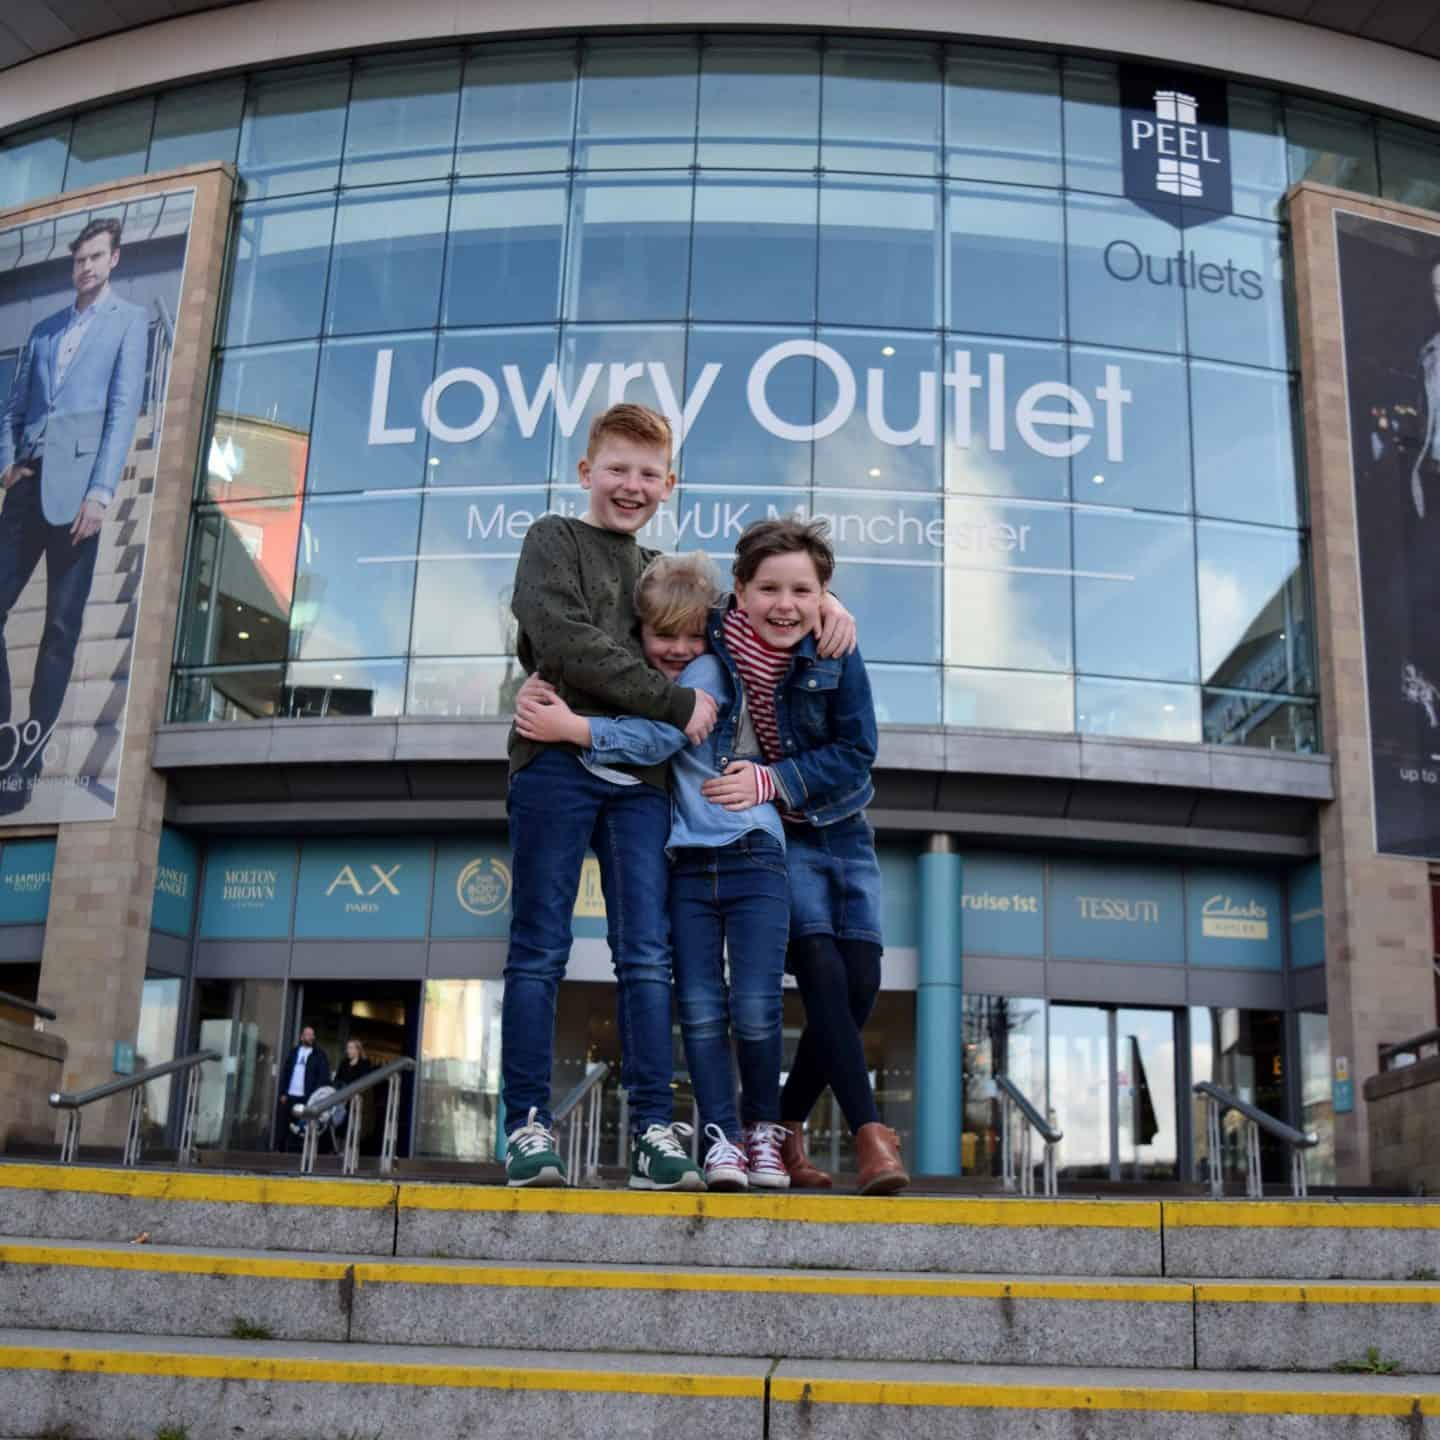 Family day our at Lowry Outlet